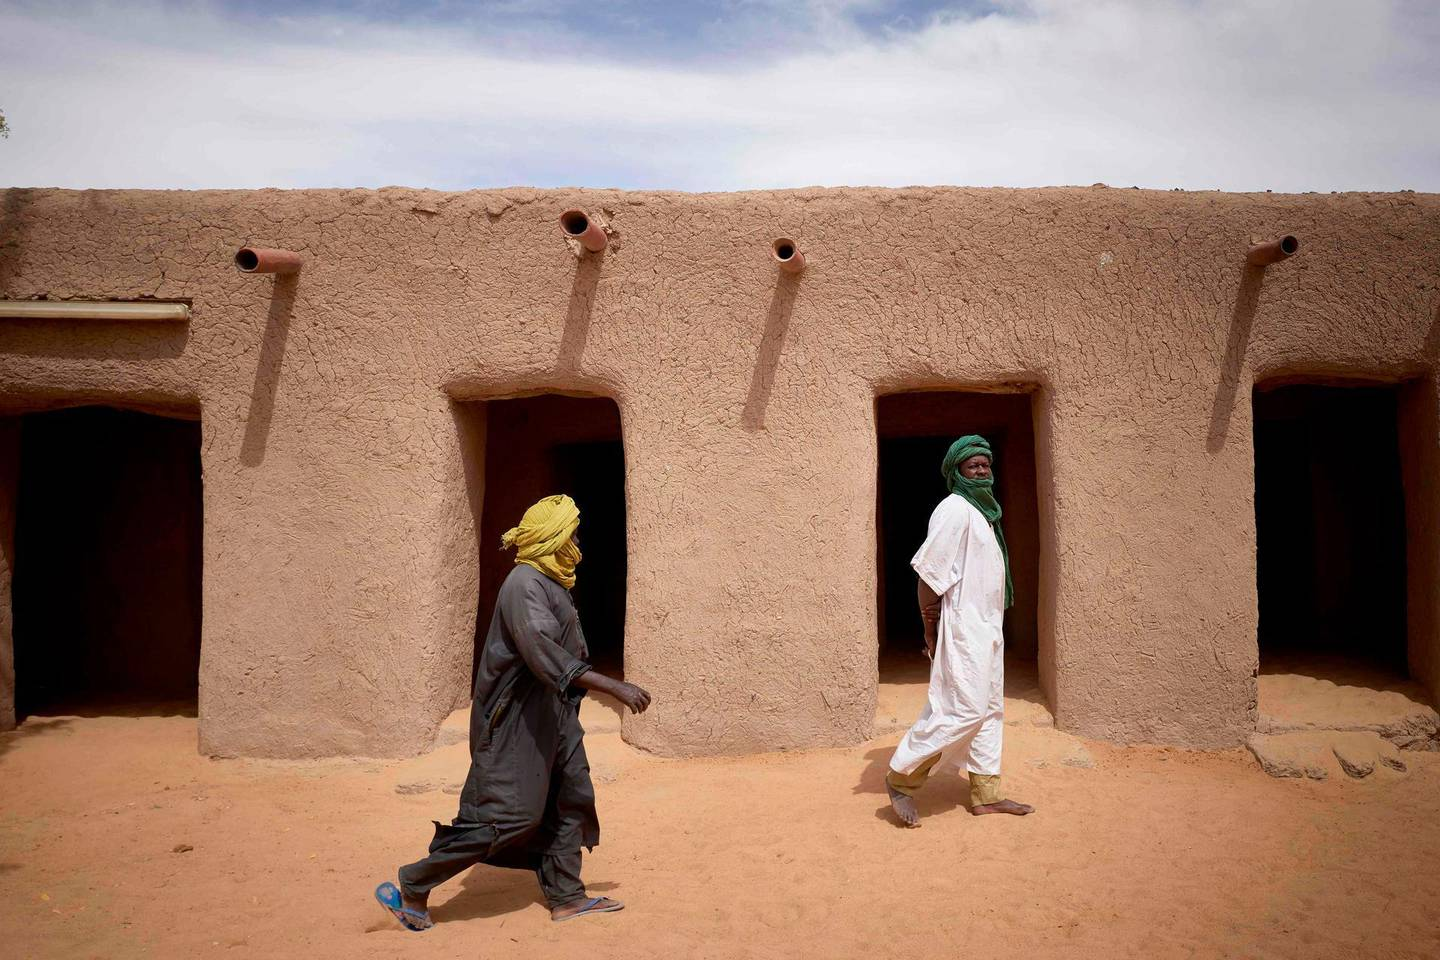 Malian faithfuls walk in the courtyard of the Tomb of Askia in Gao on March 10, 2020. The site, which was protected during the 10 months of jihadist occupation in 2012, represents one of the finest examples of Sudano-Sahelian architecture in the Sahel region. / AFP / MICHELE CATTANI